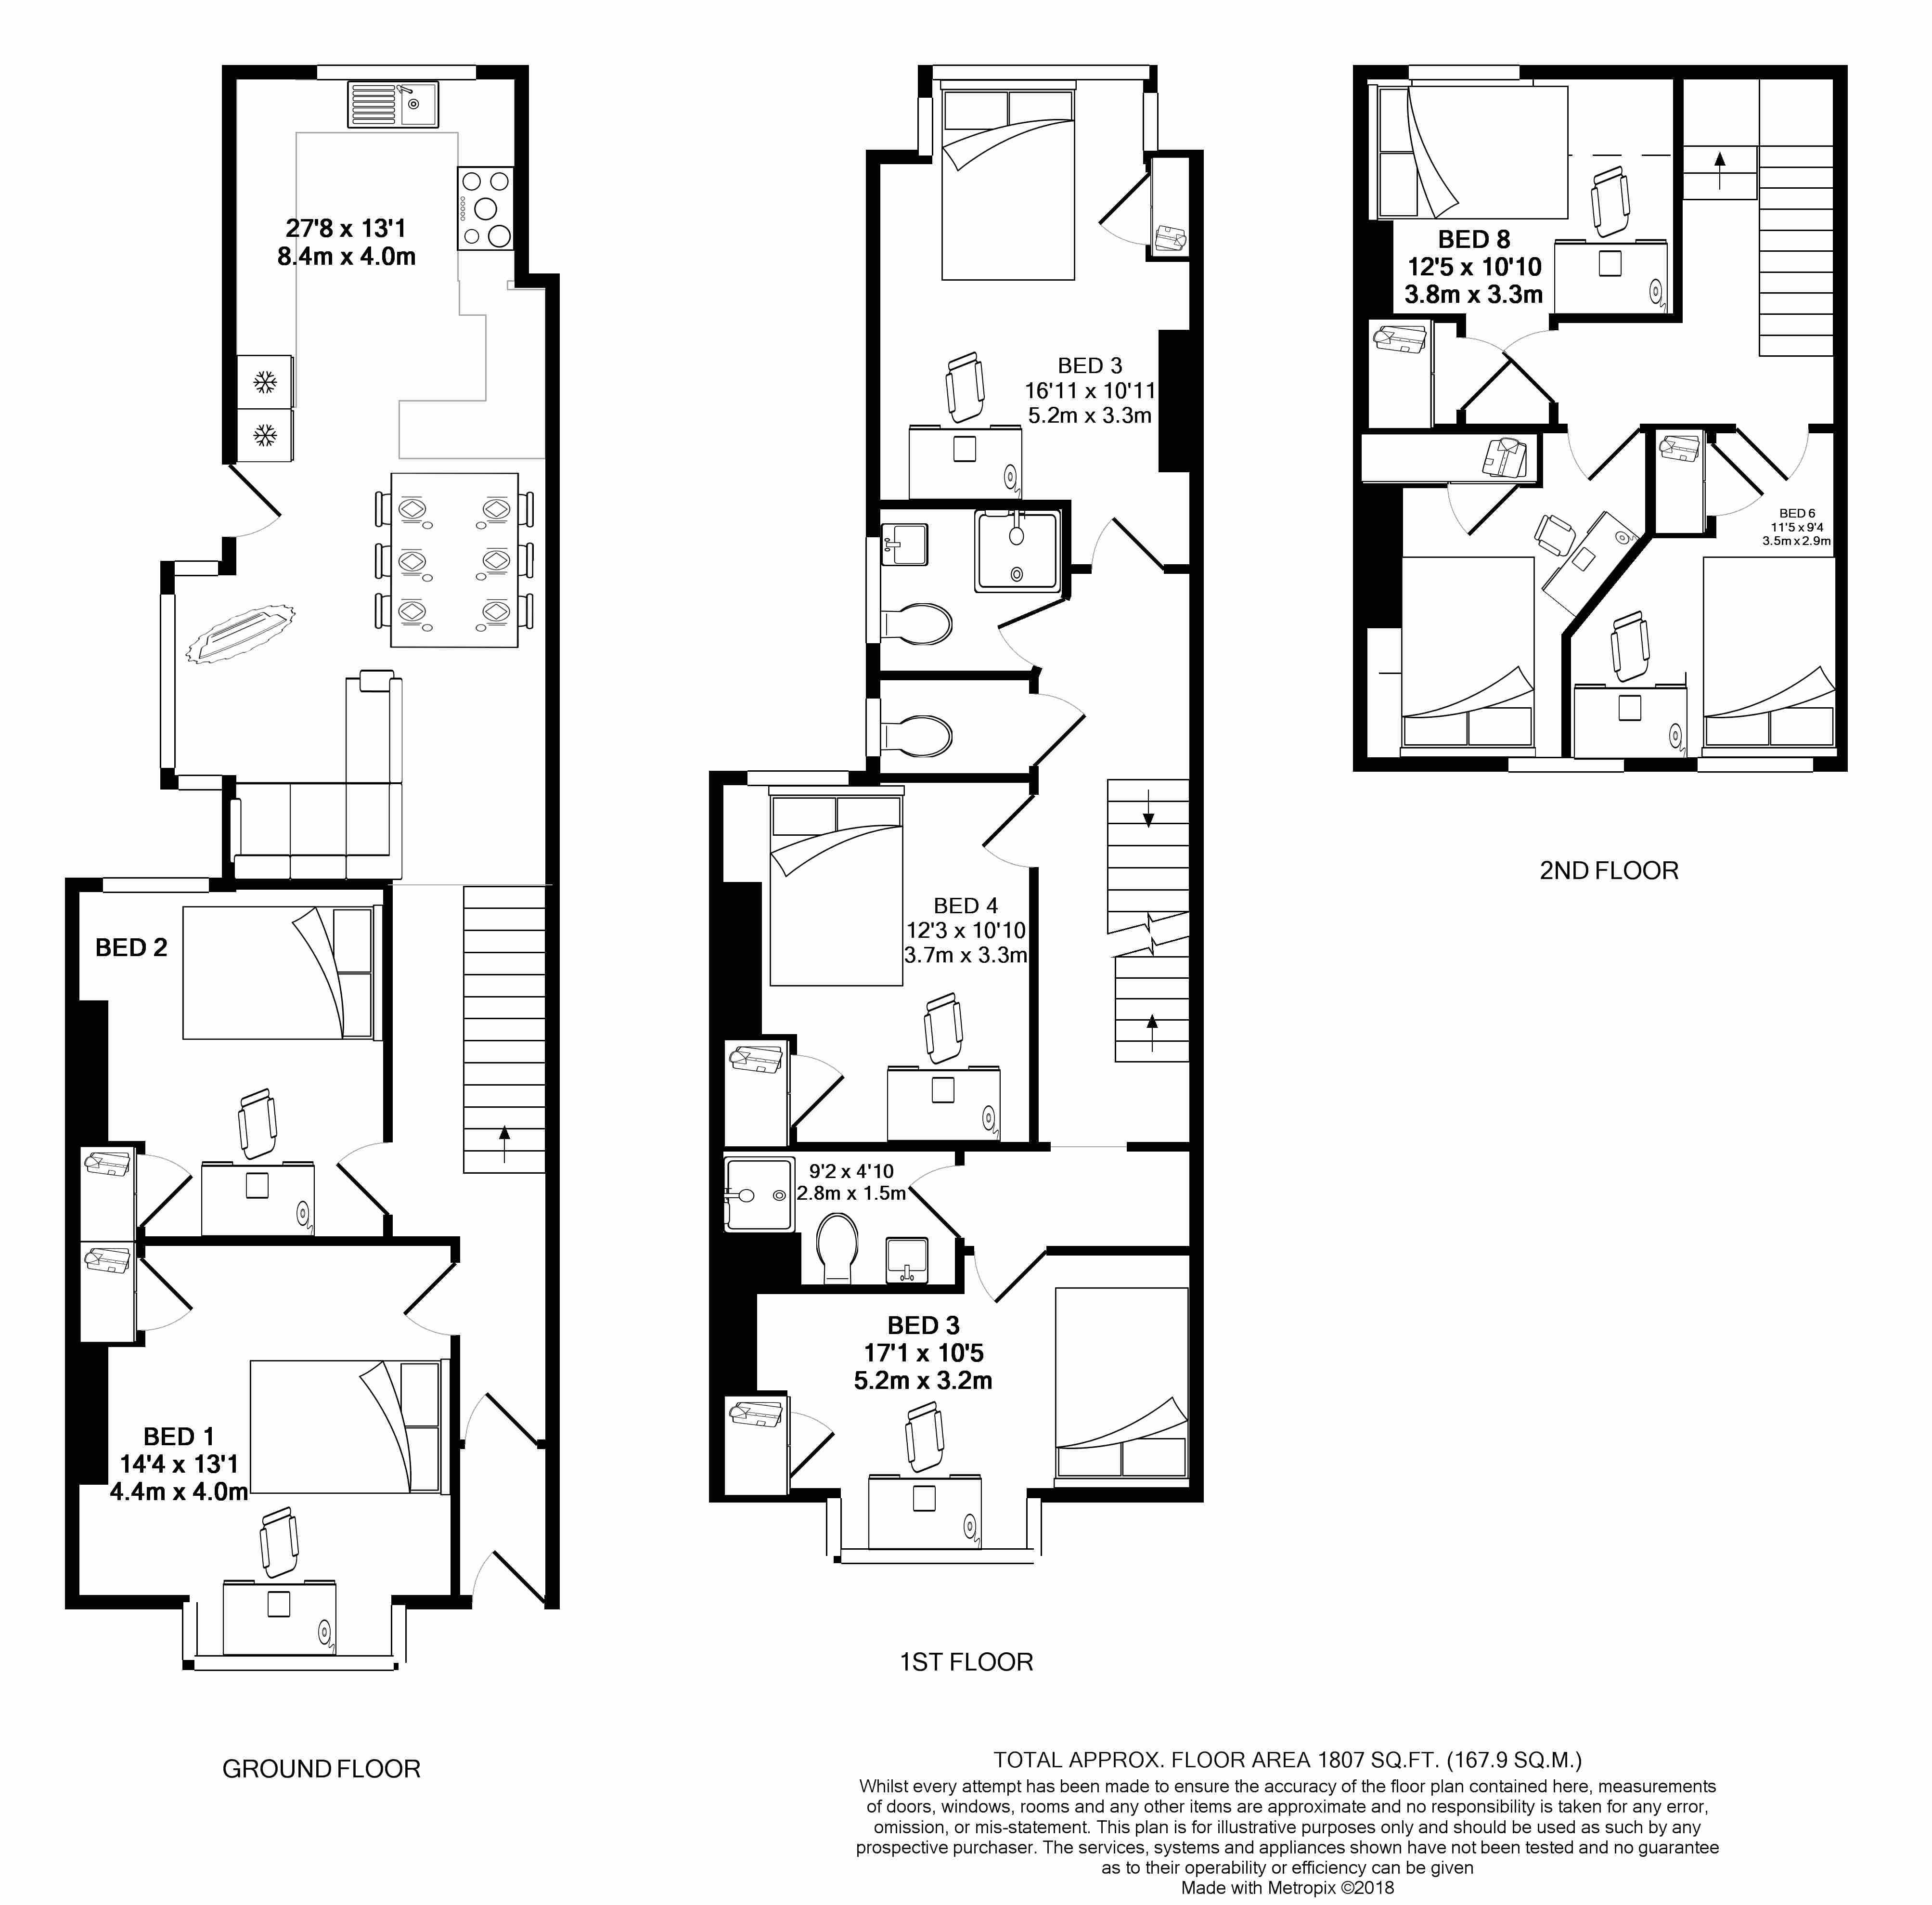 68 Monks Road - floorplans